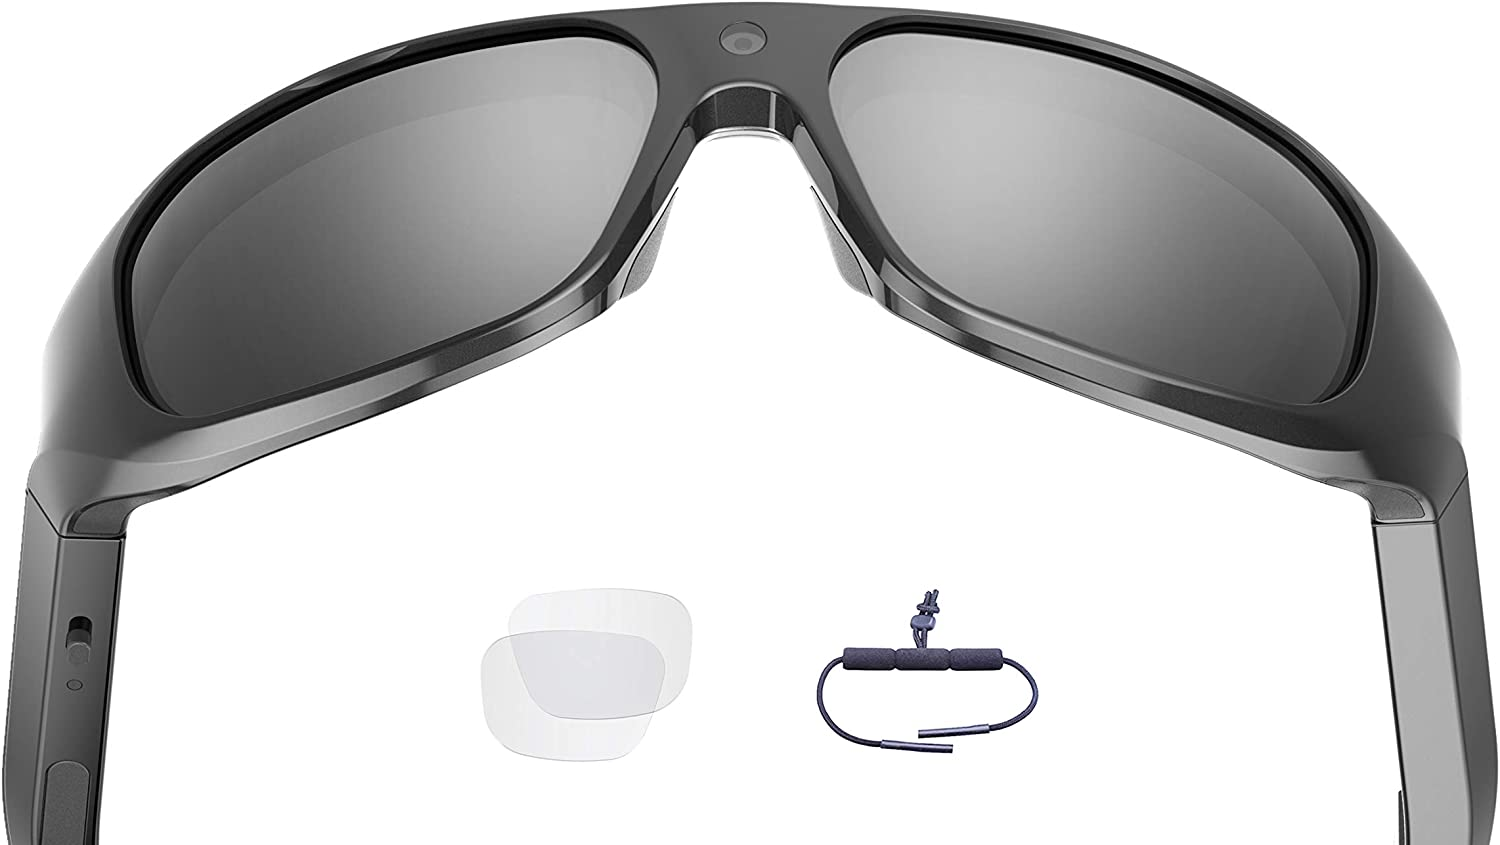 OhO sunshine 4K Ultra HD Water Resistance Video Sunglasses, Sports Action Camera with Built-in 32GB Memory and Polarized UV400 Protection Safety Lenses,Unisex Sport Design